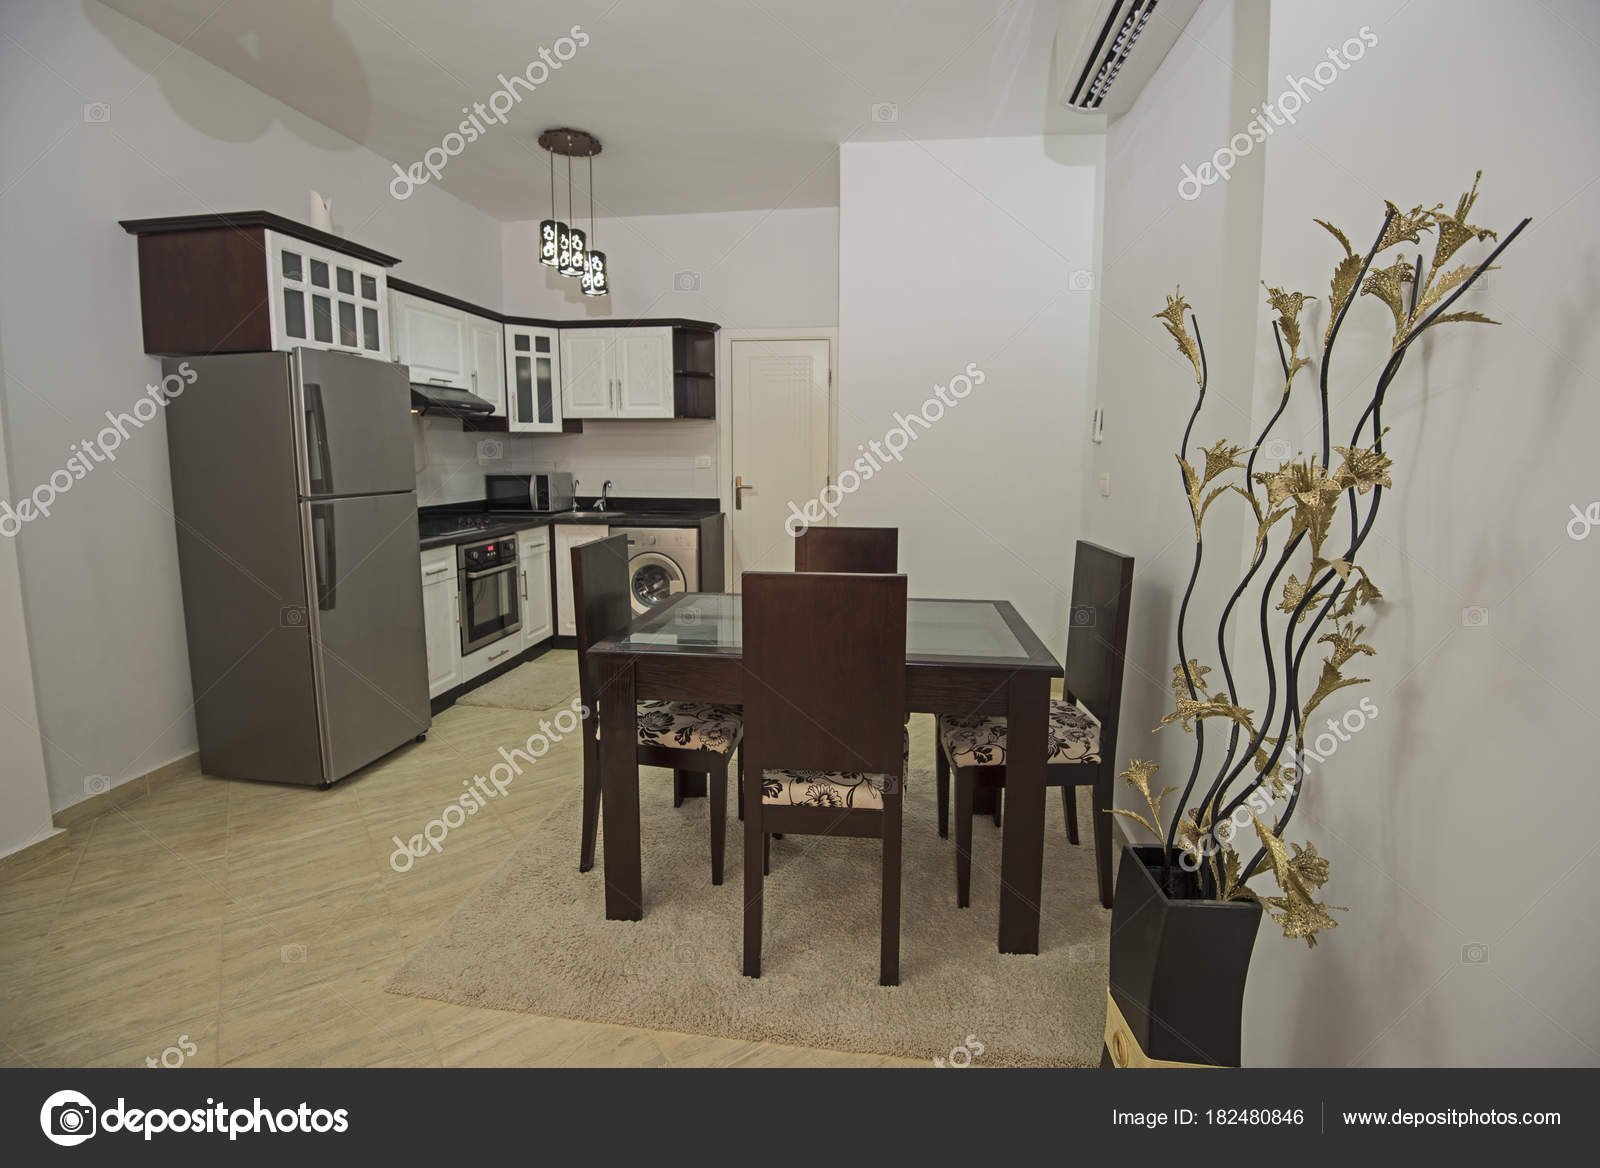 Interior decor design of kitchen in show home apartment stock photo